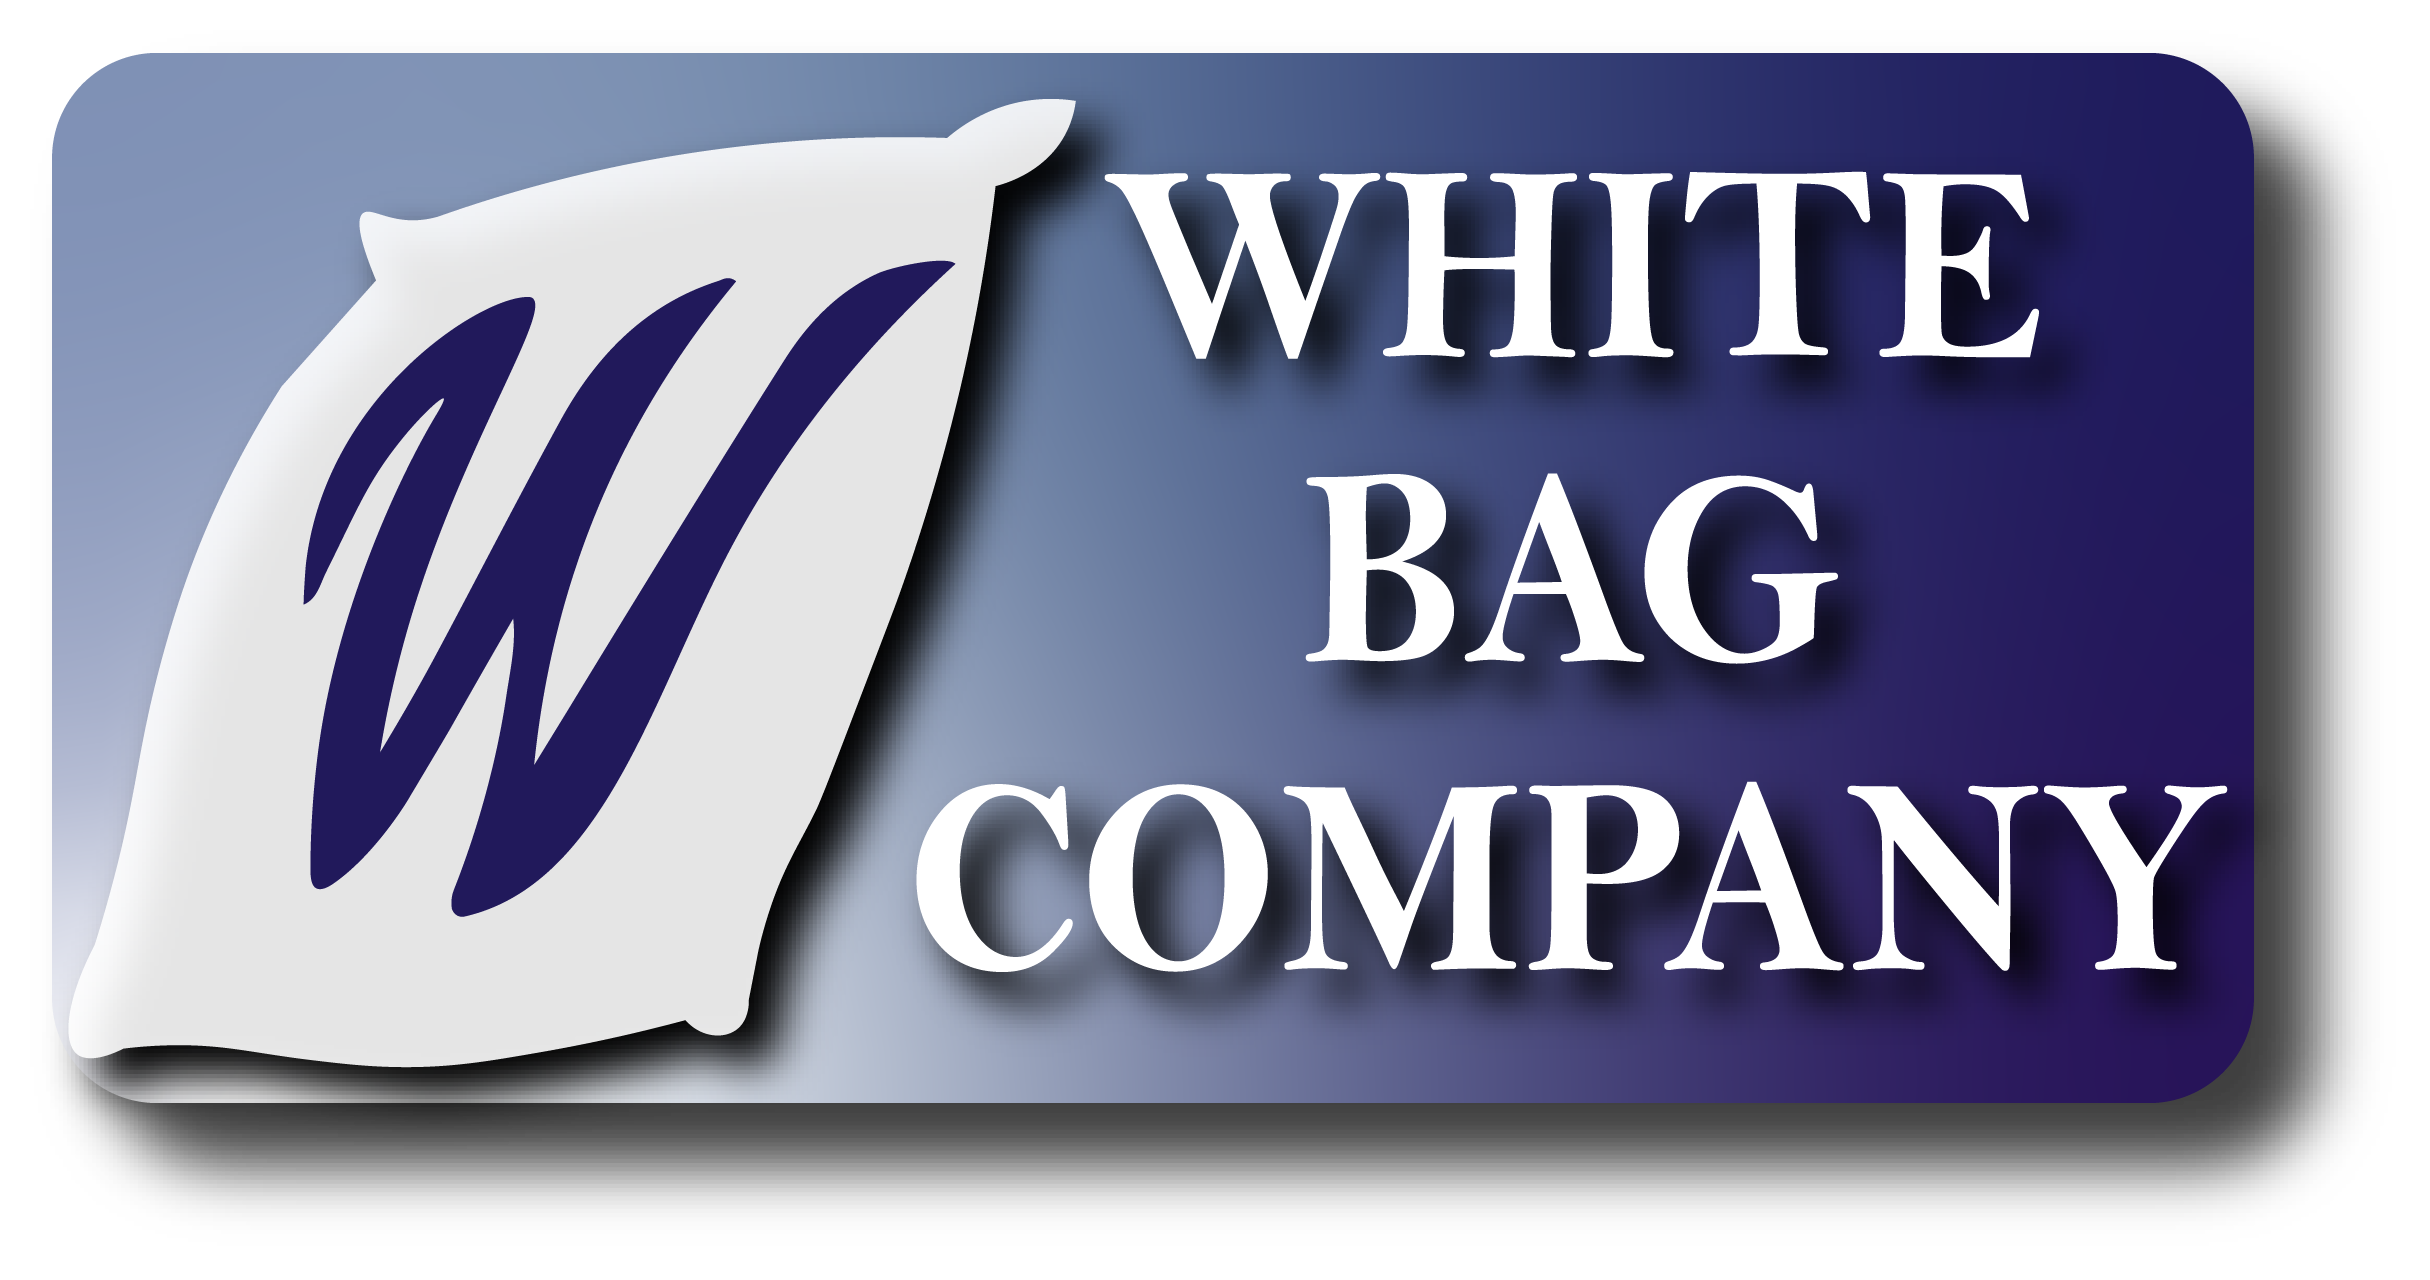 White Bag Company